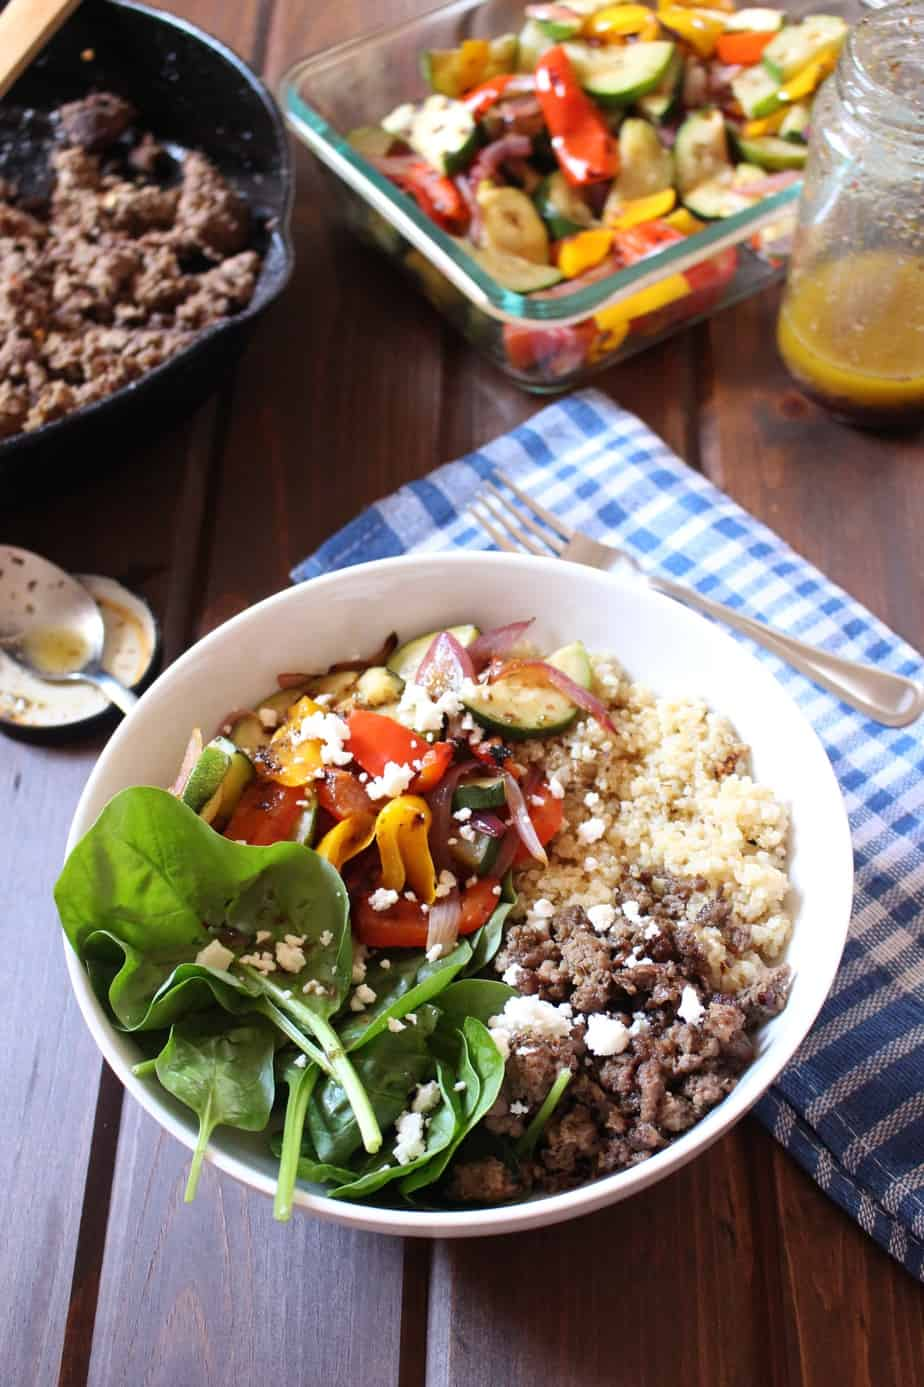 Mediterranean Quinoa Bowls with Beef and Grilled Veggies | Frugal Nutrition